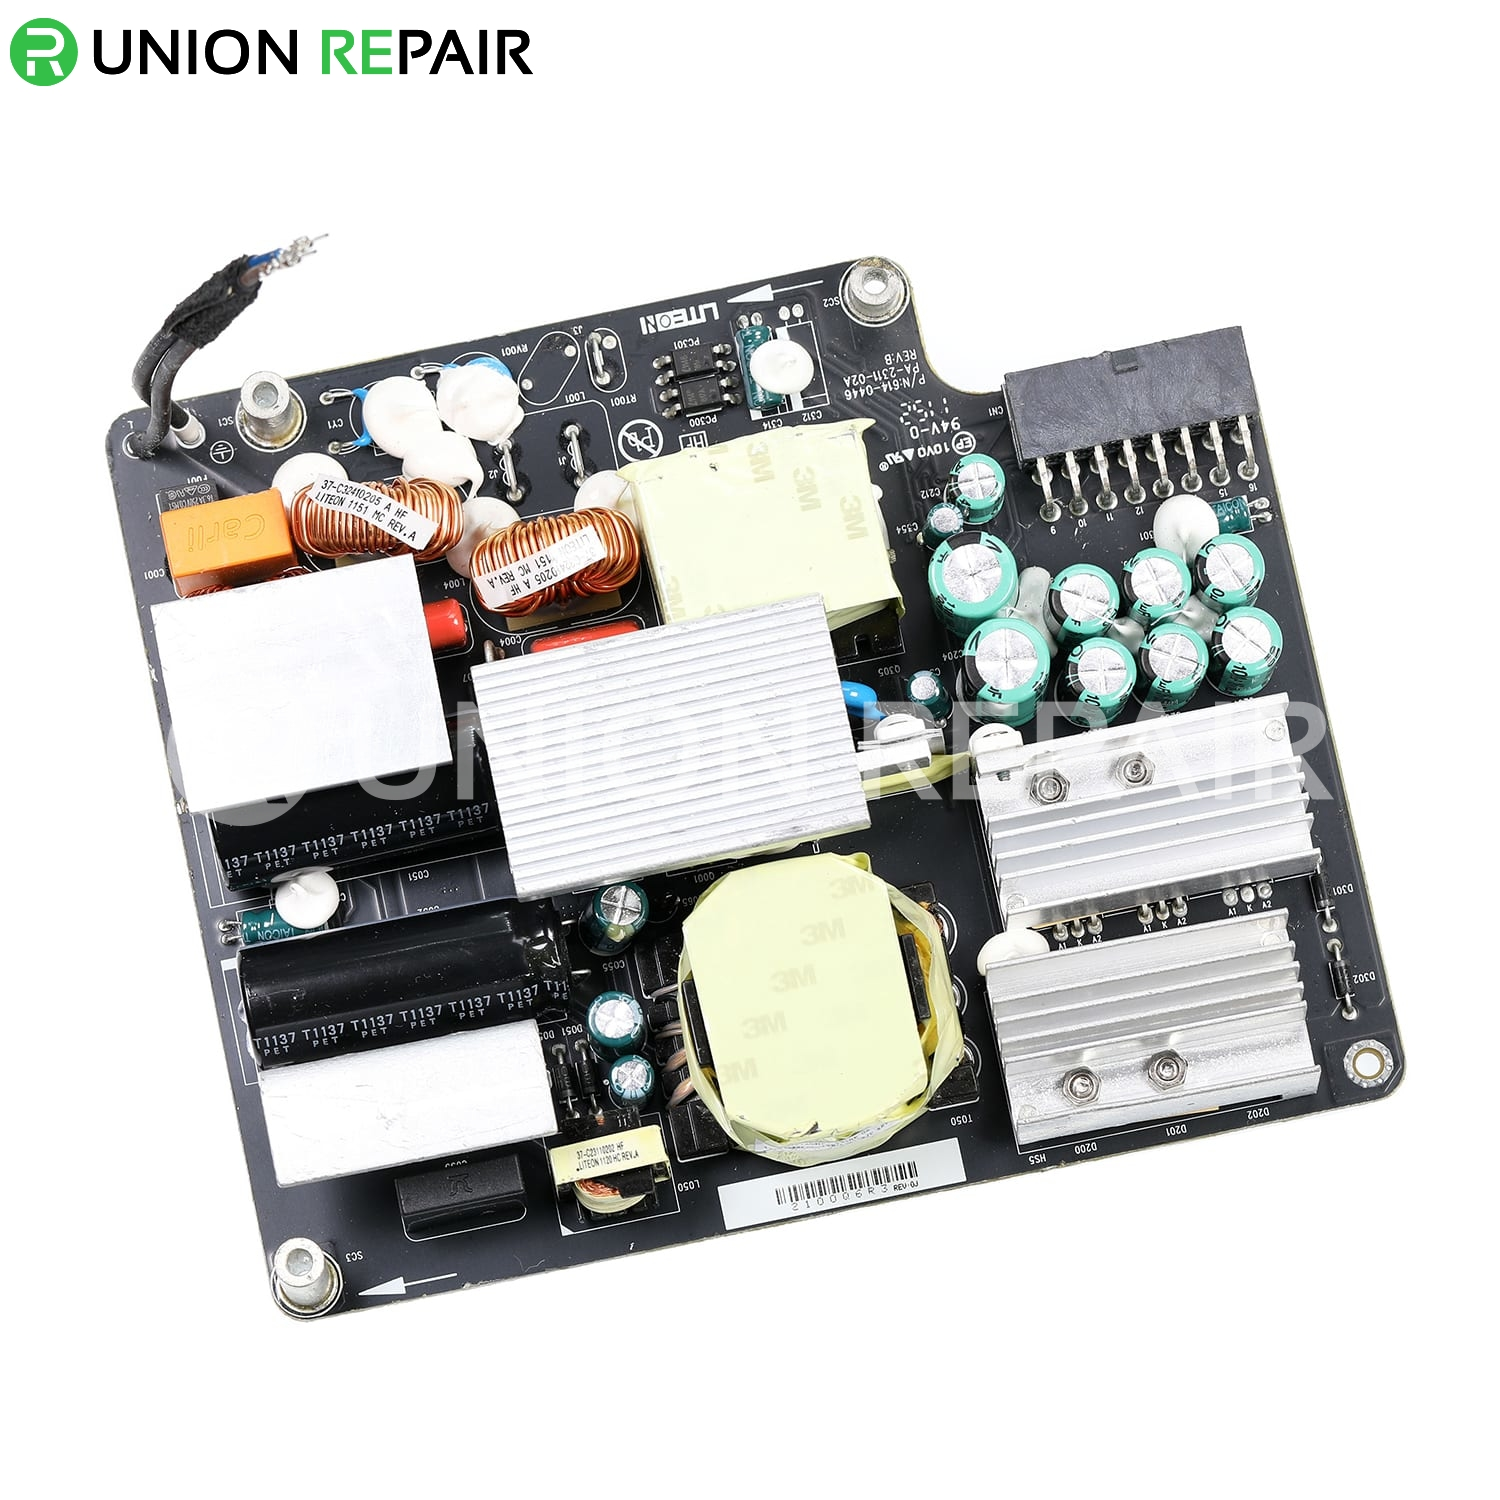 """Power Supply (310W) for iMac 27"""" A1312 (Mid 2011) #661-5972"""